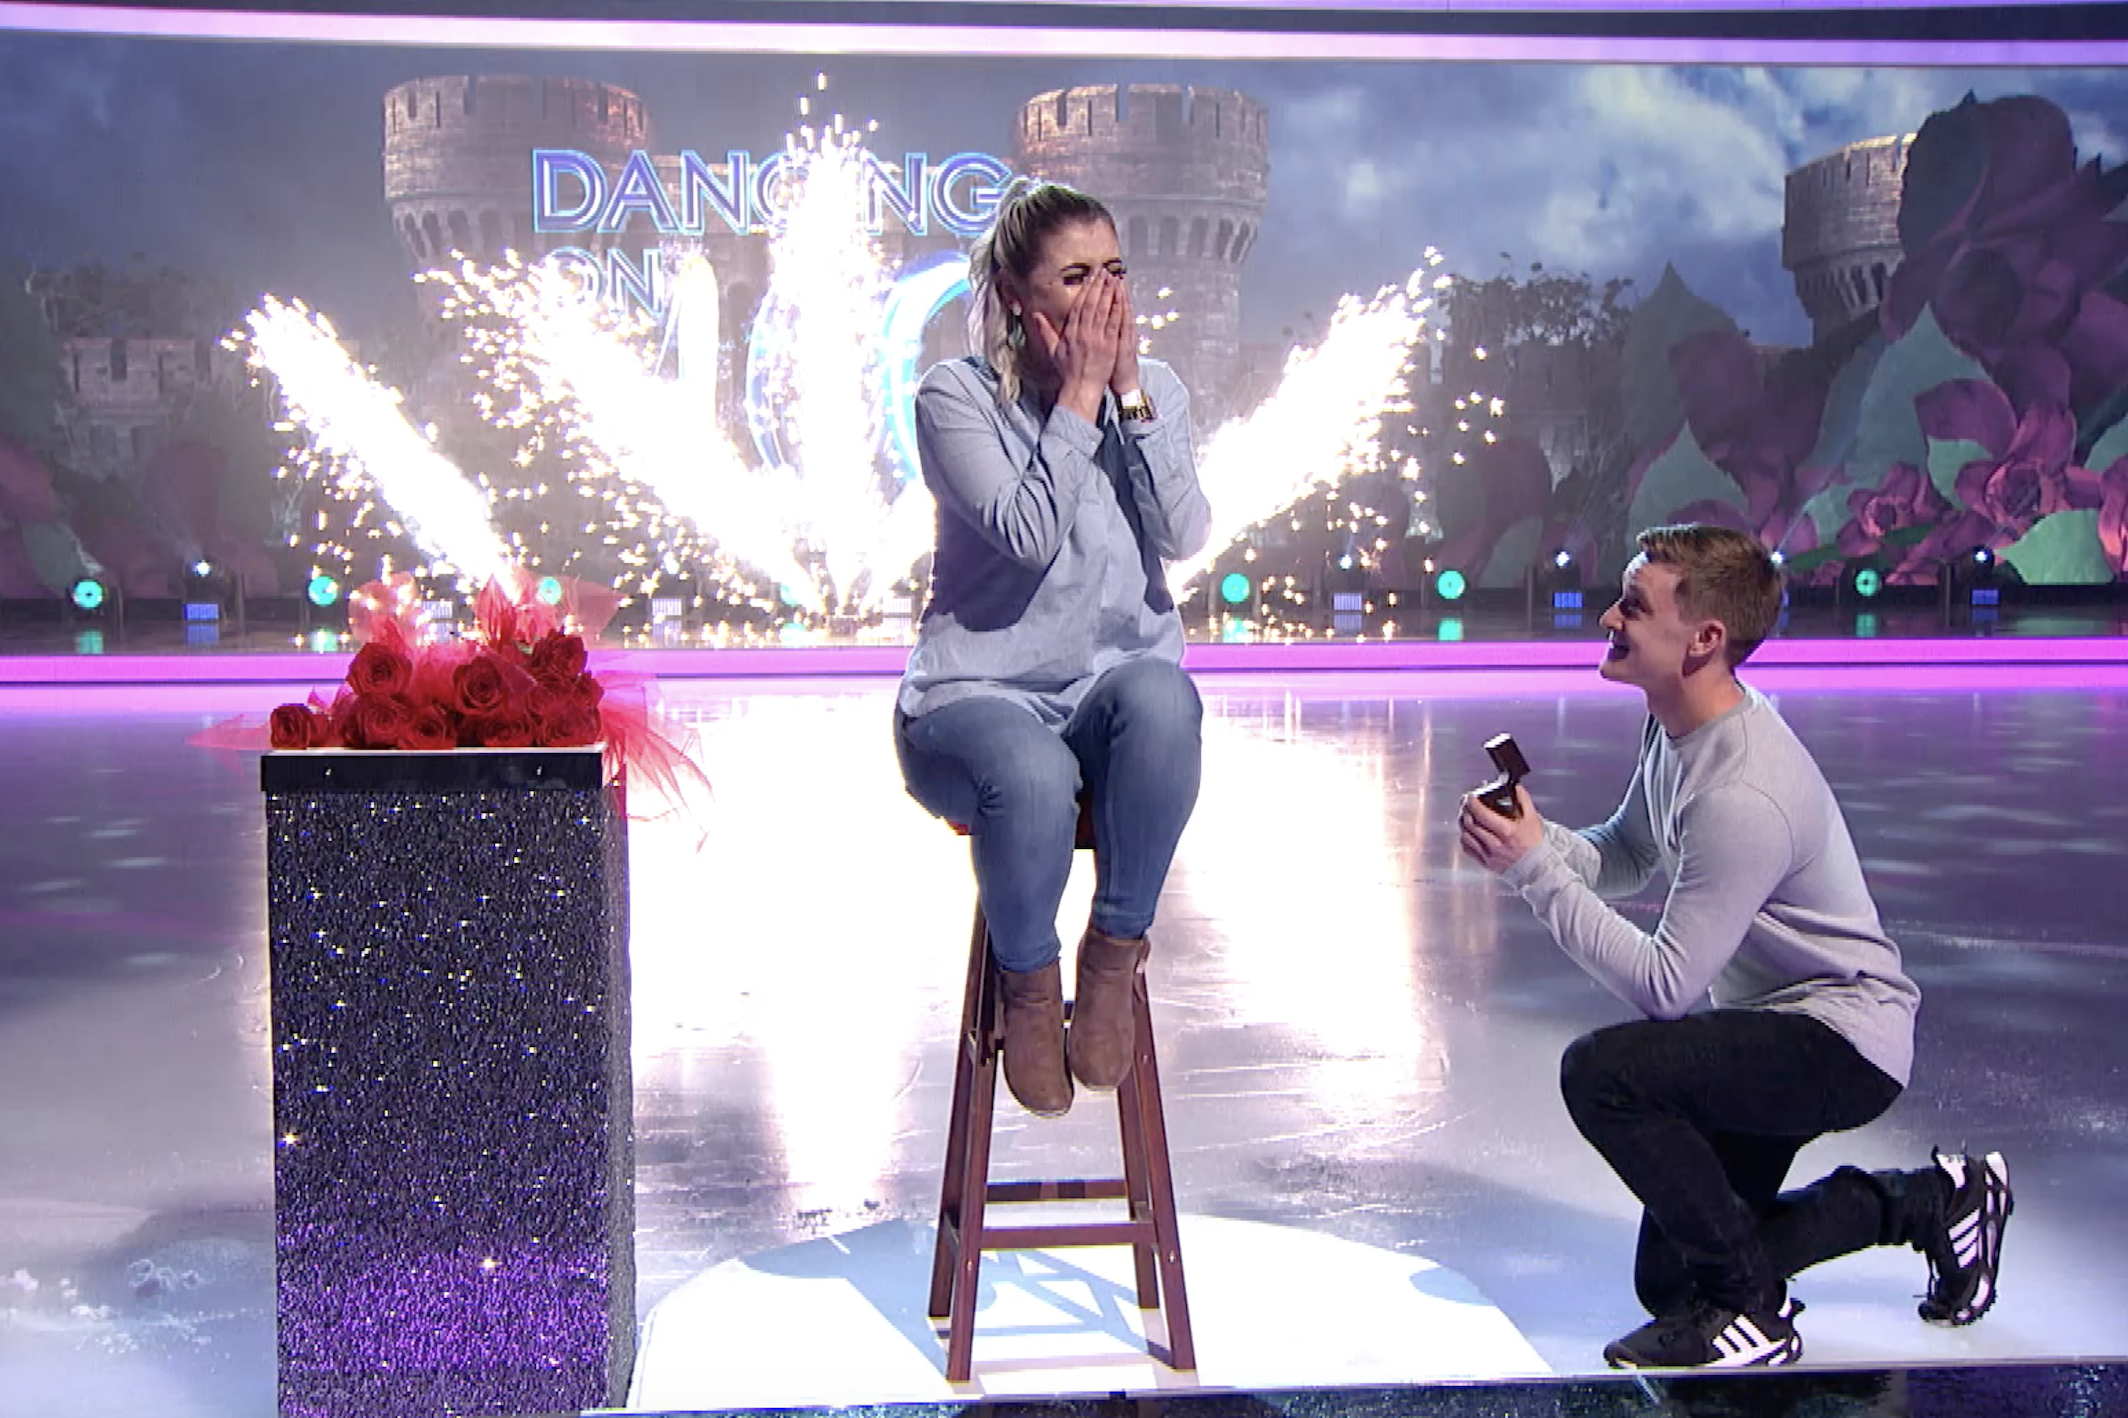 Watch the Dancing on Ice wedding proposal you didn't get to see on TV